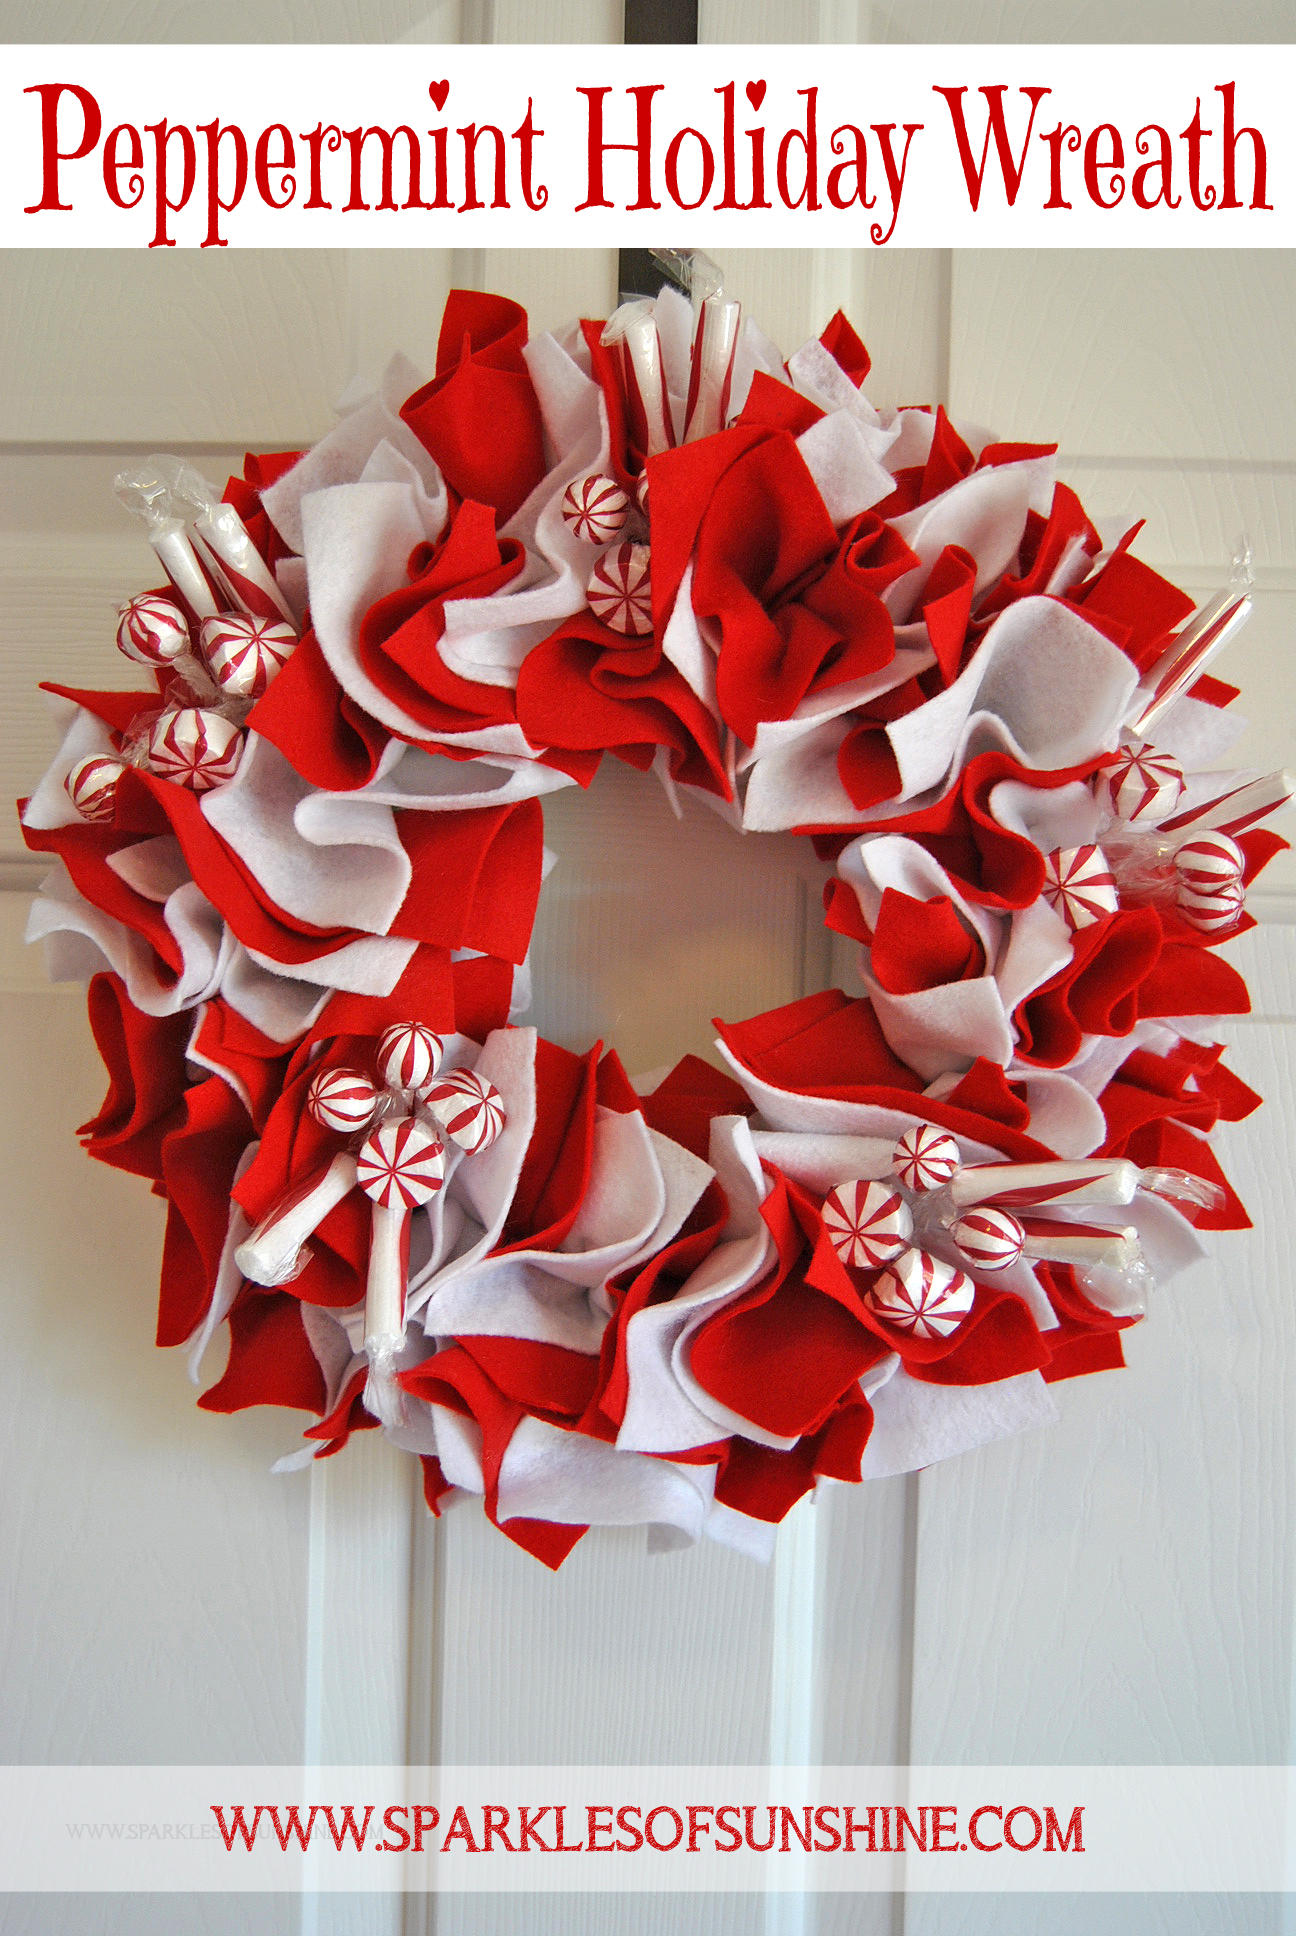 Add something sweet to your Christmas decor this year with a Peppermint Holiday Wreath!